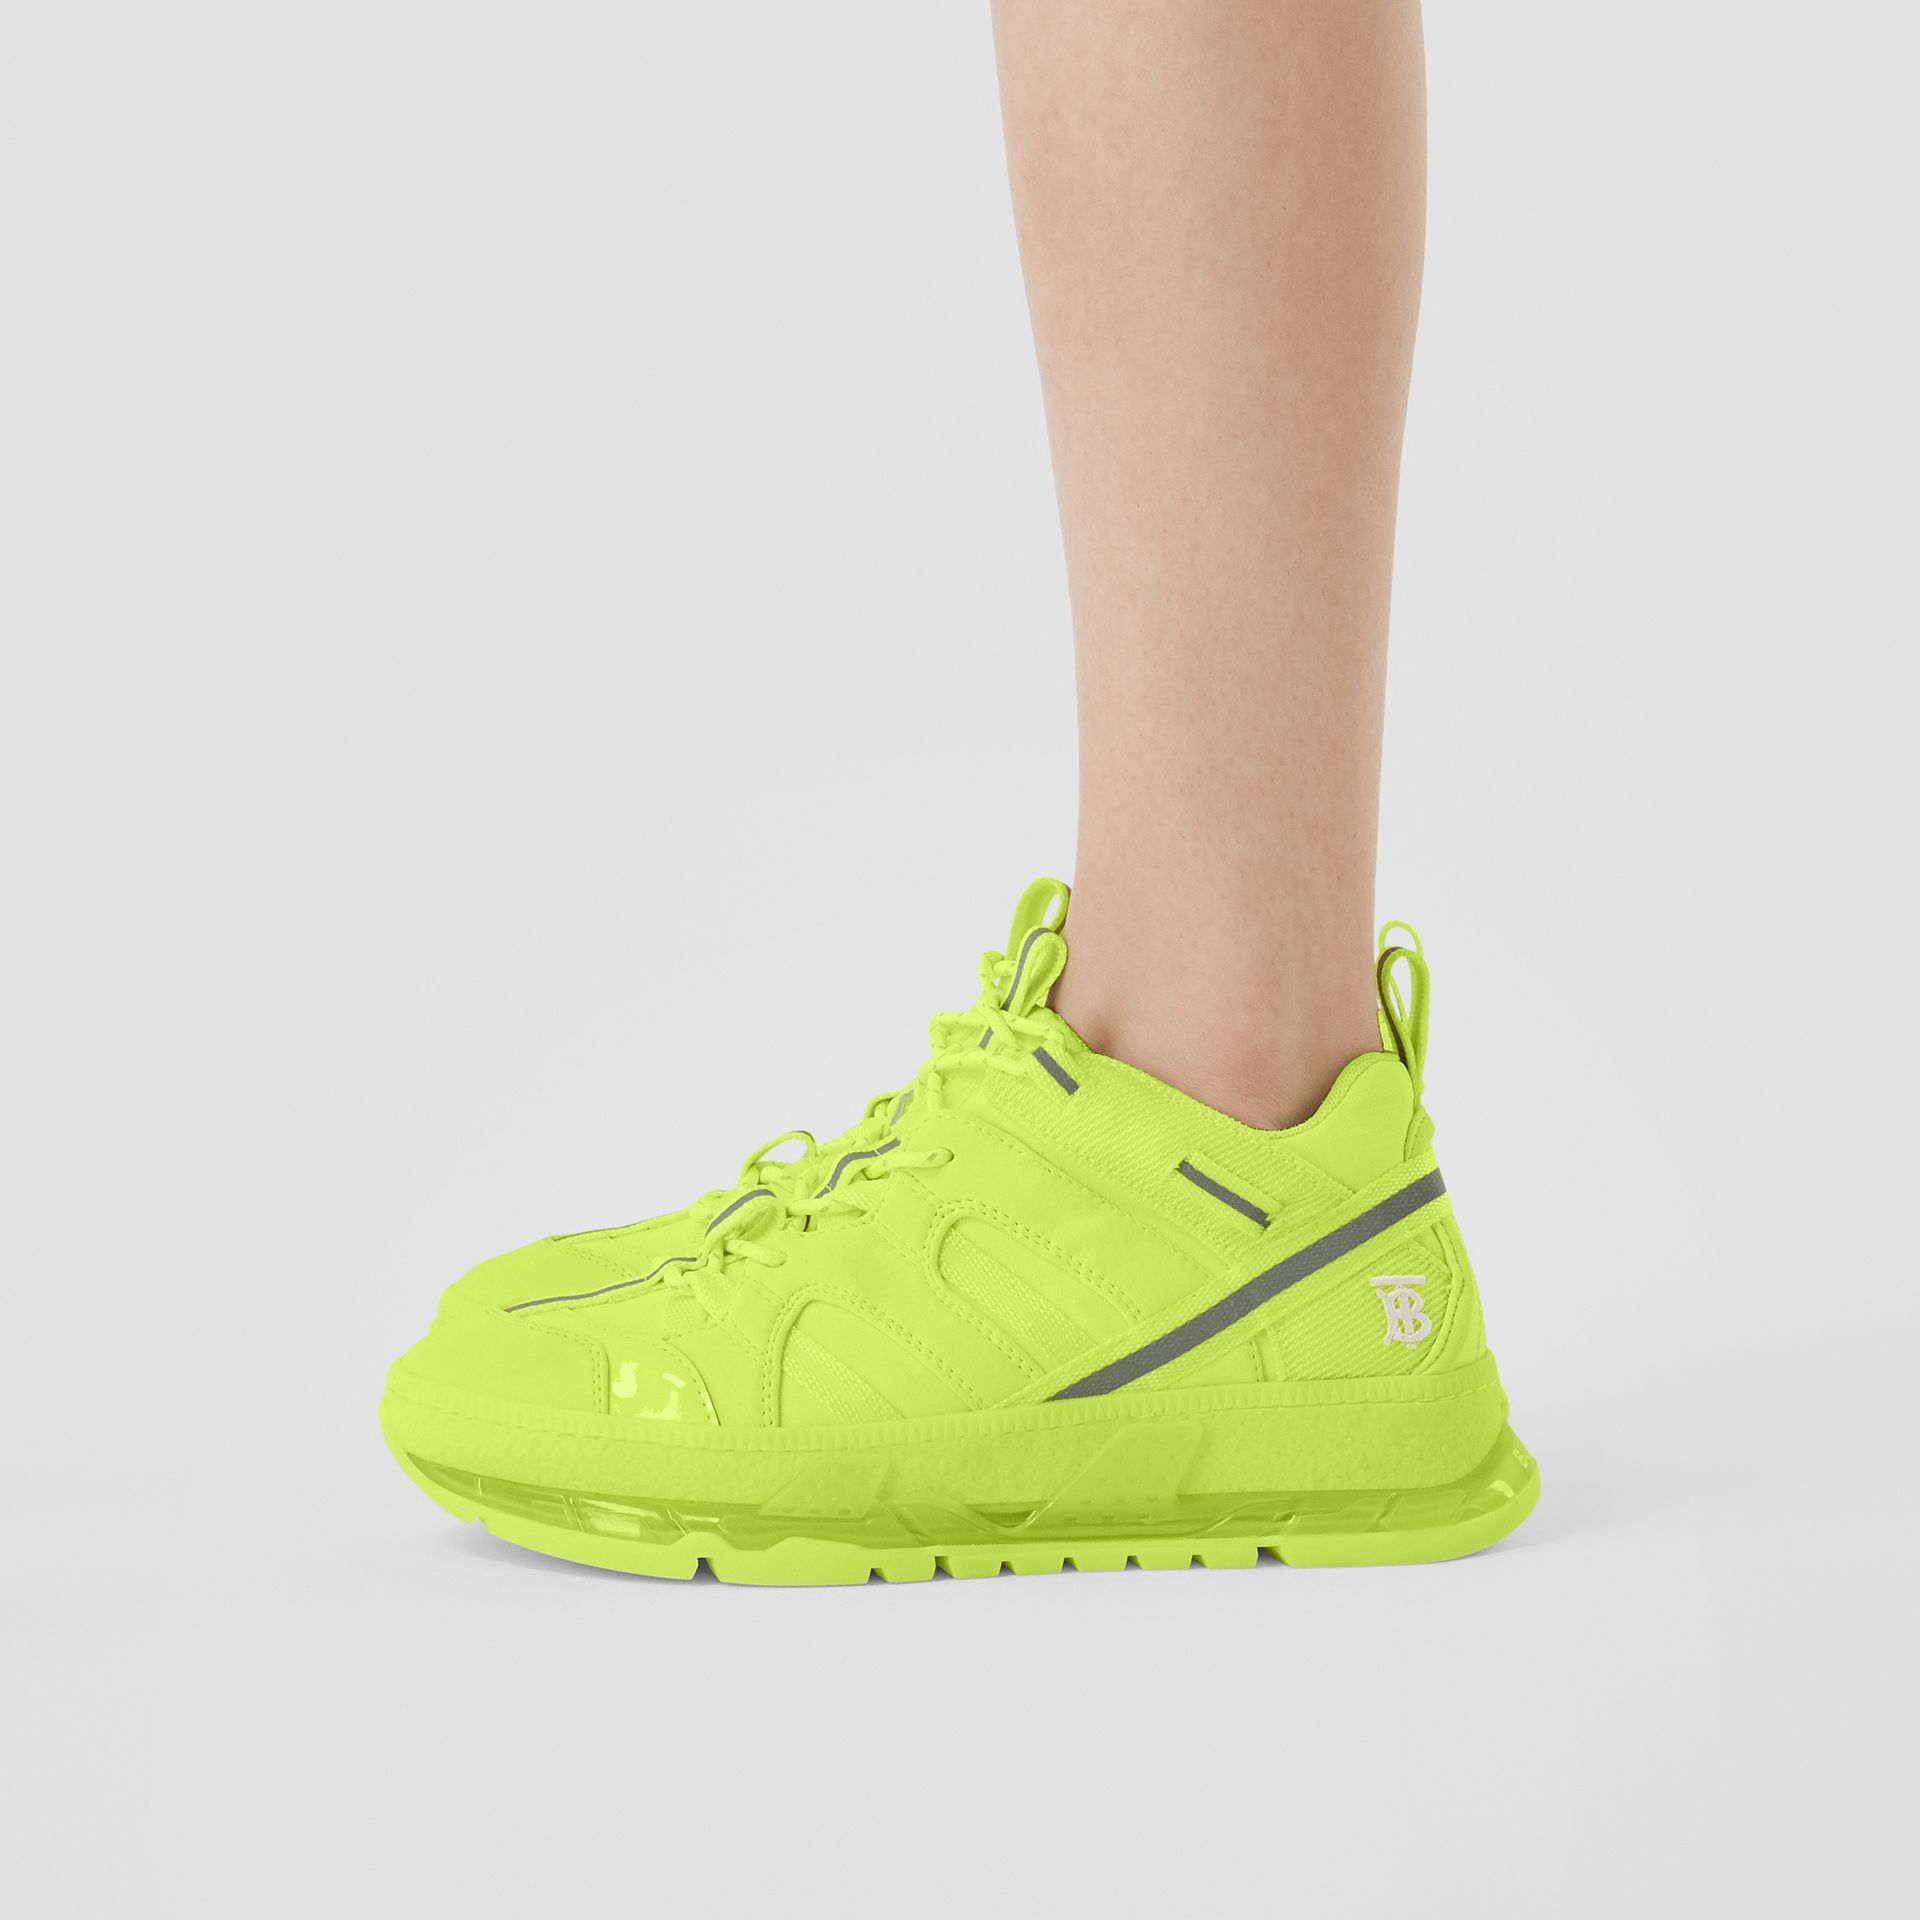 Nylon and Cotton Union Sneakers in Fluorescent Yellow - Women | Burberry United Kingdom - gallery image 2